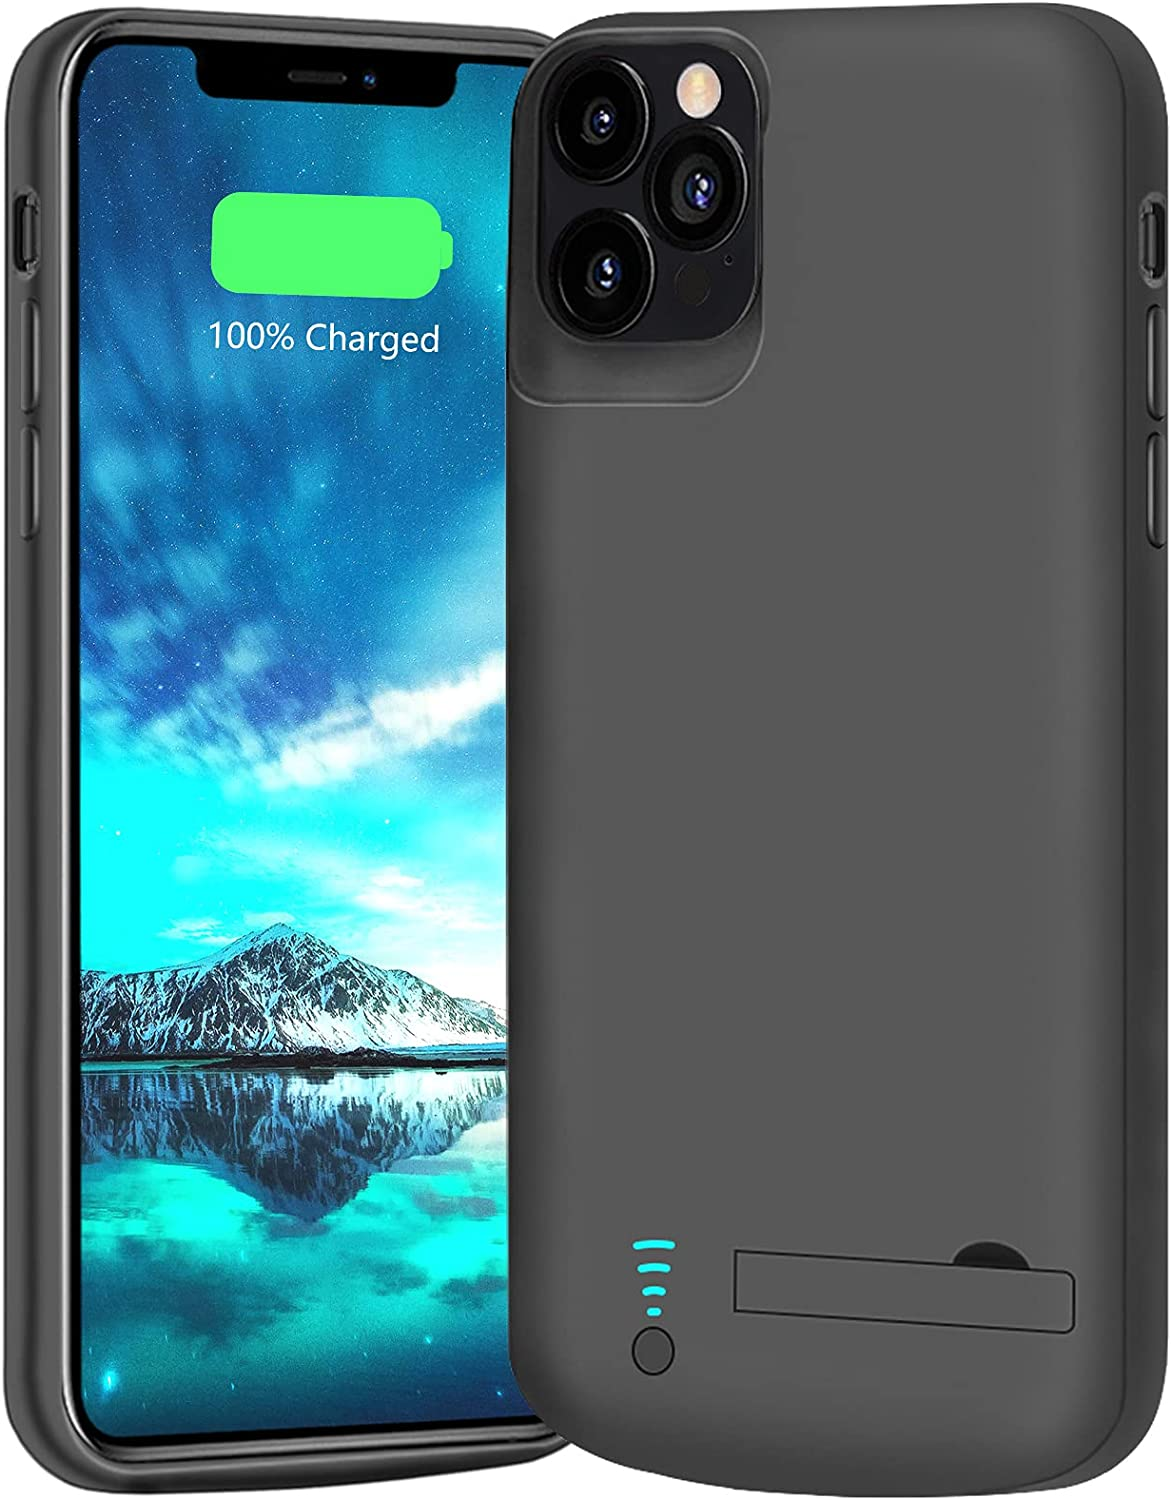 BAHOND Battery Case for iPhone 12 & iPhone 12 Pro, 5000mAh Rechargeable Extended Battery Charging Charger Case, Add 100% Extra Juice, Support Wire Headphones (6.1 inch)